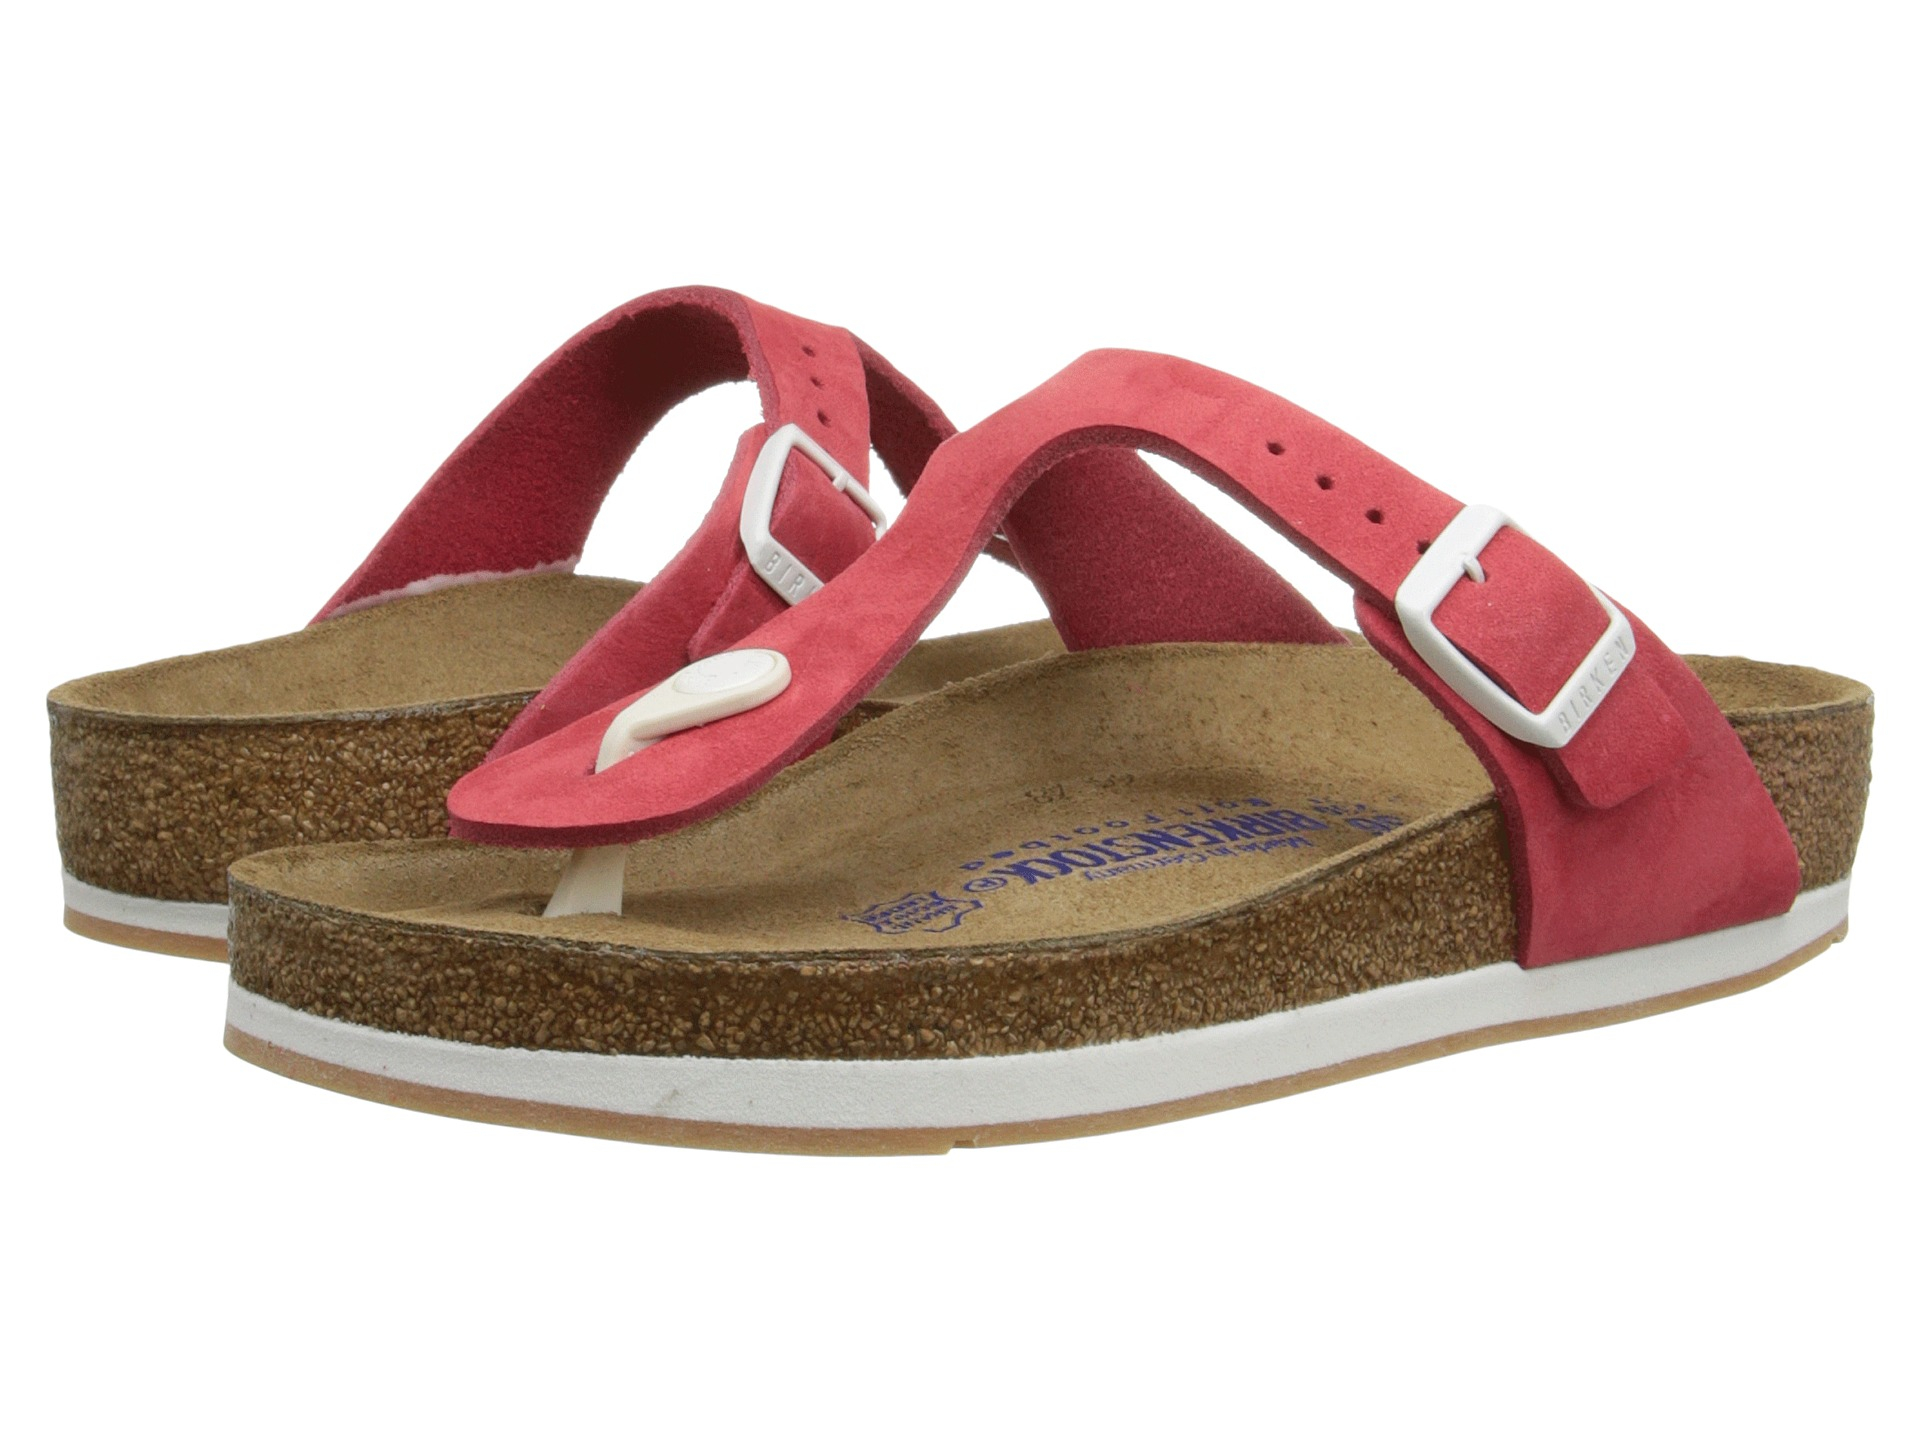 70725b6bc99e Gallery. Previously sold at  Zappos · Women s Birkenstock Gizeh ...